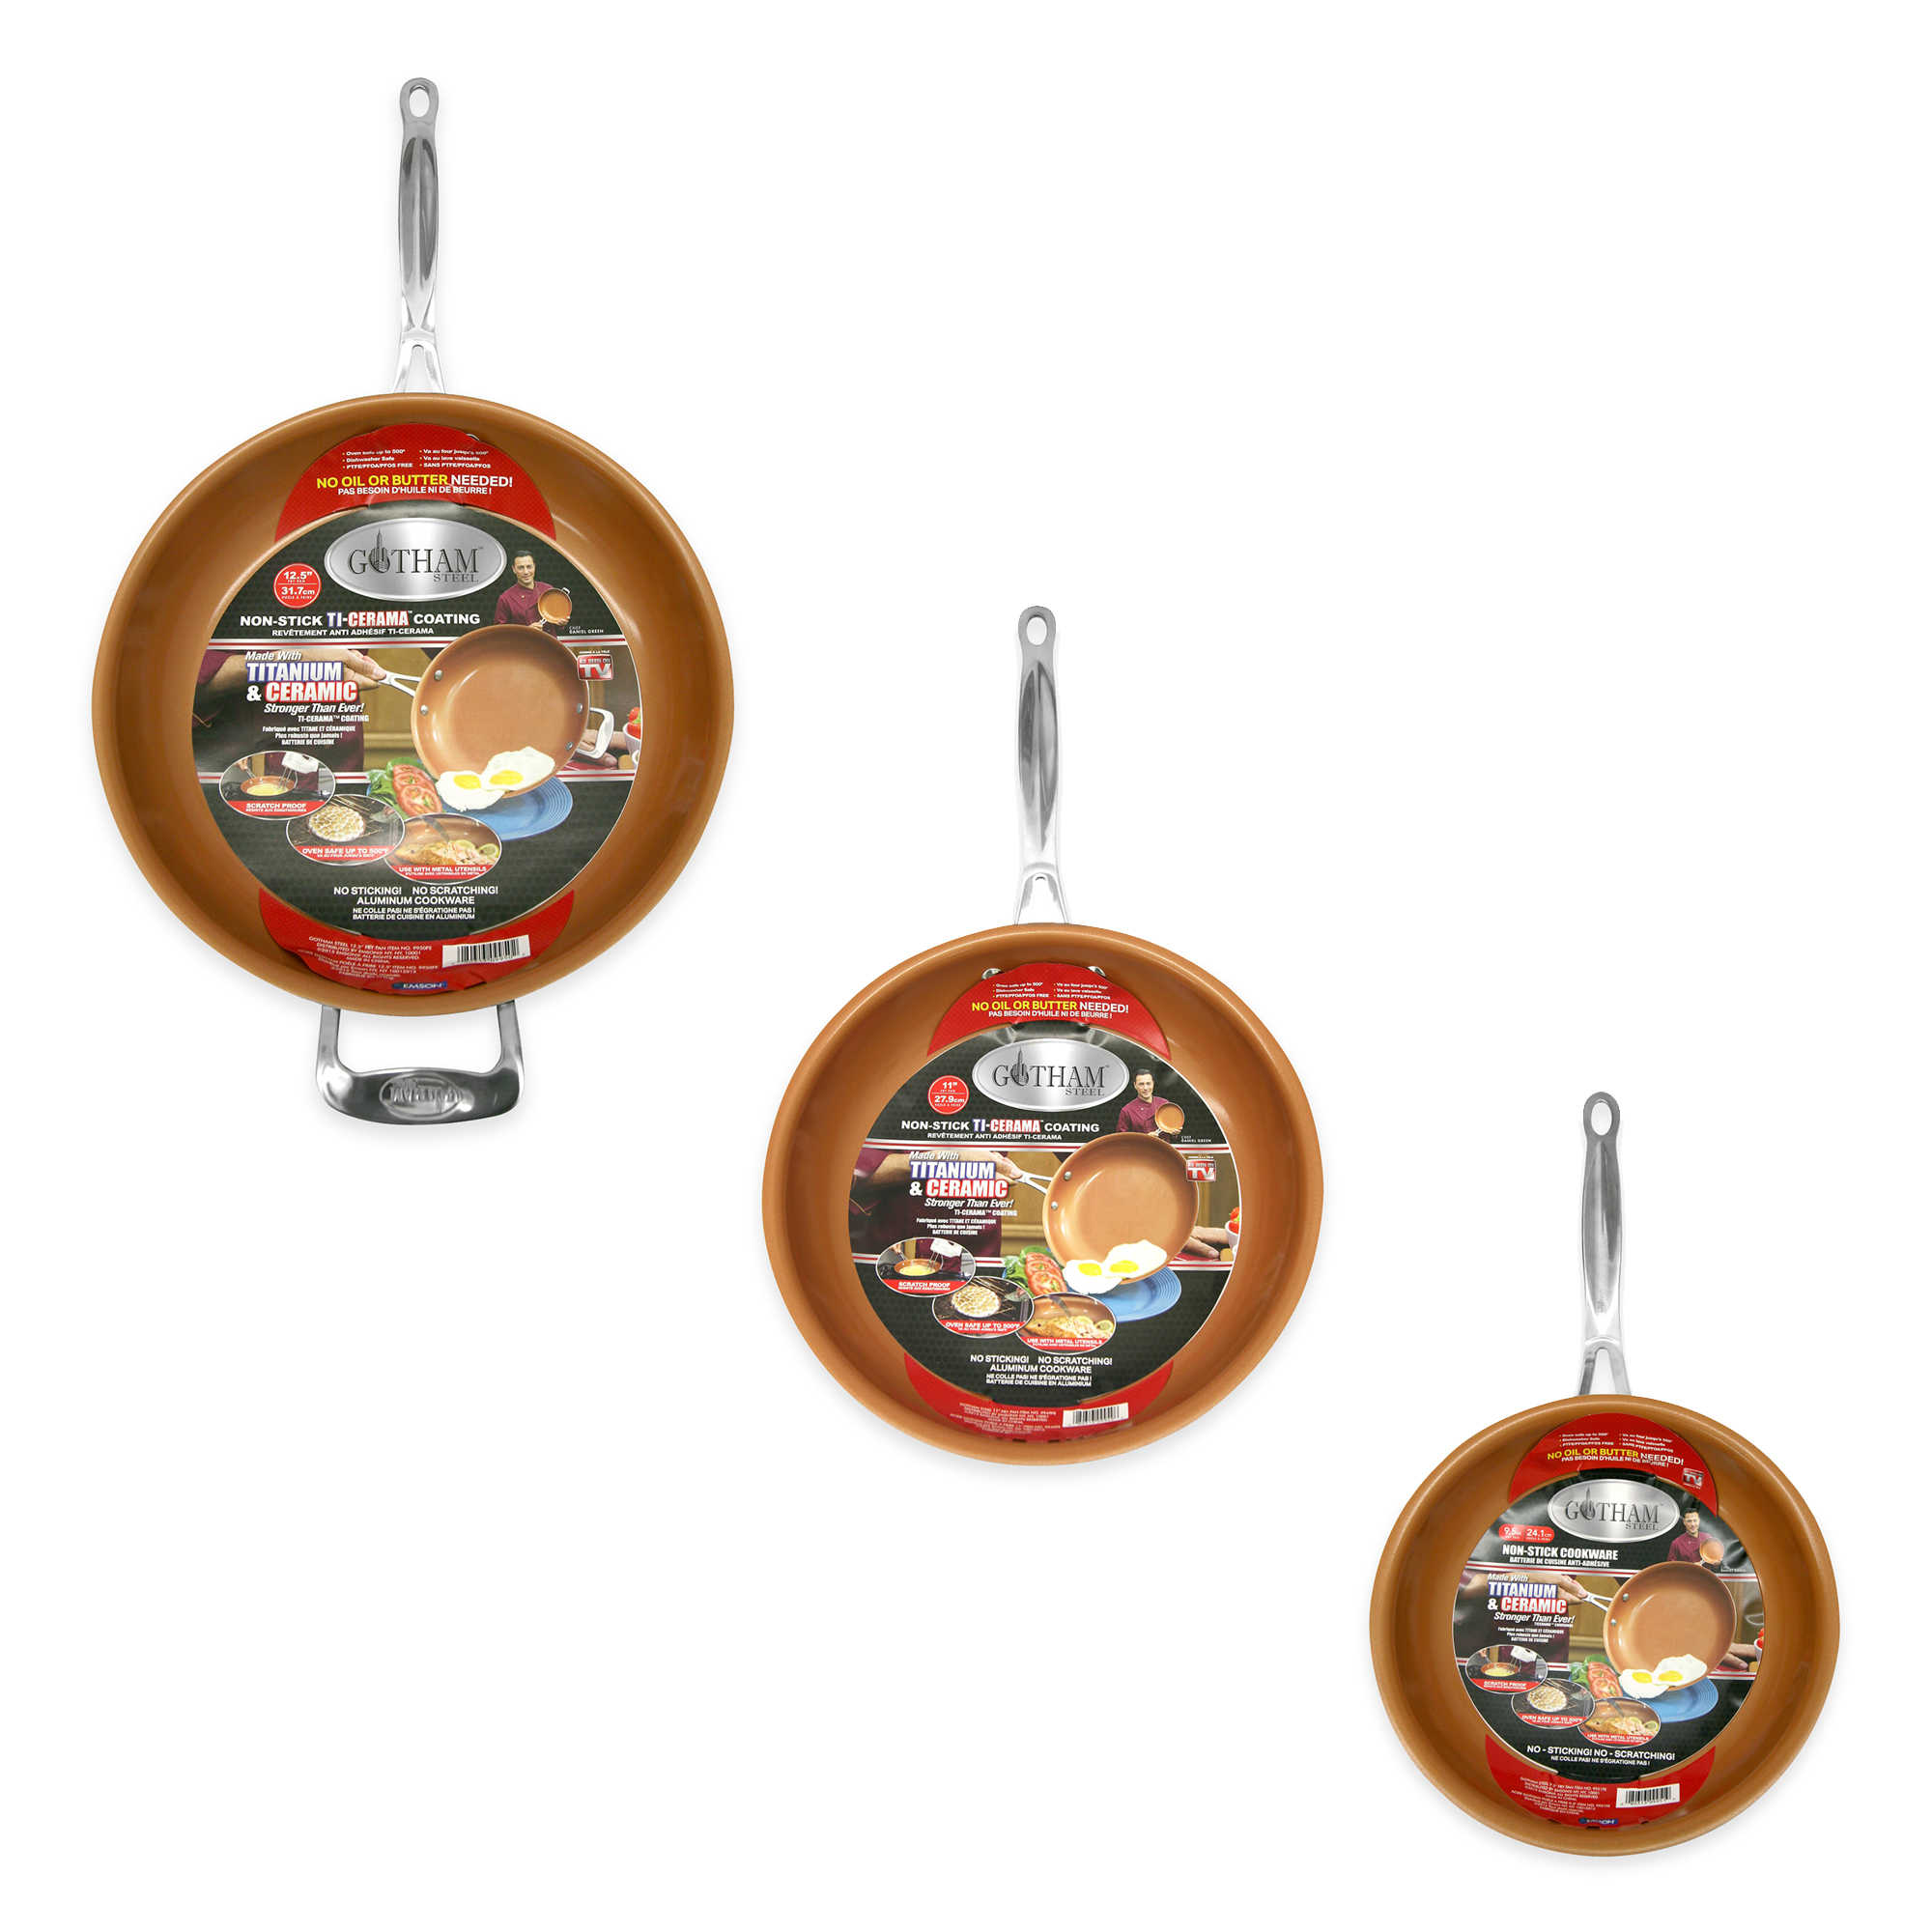 "Gotham Steel 3-Piece Nonstick Frying Pan Set, 3 Sizes - 9.5"", 11"" and 12.5"", As Seen on TV!"